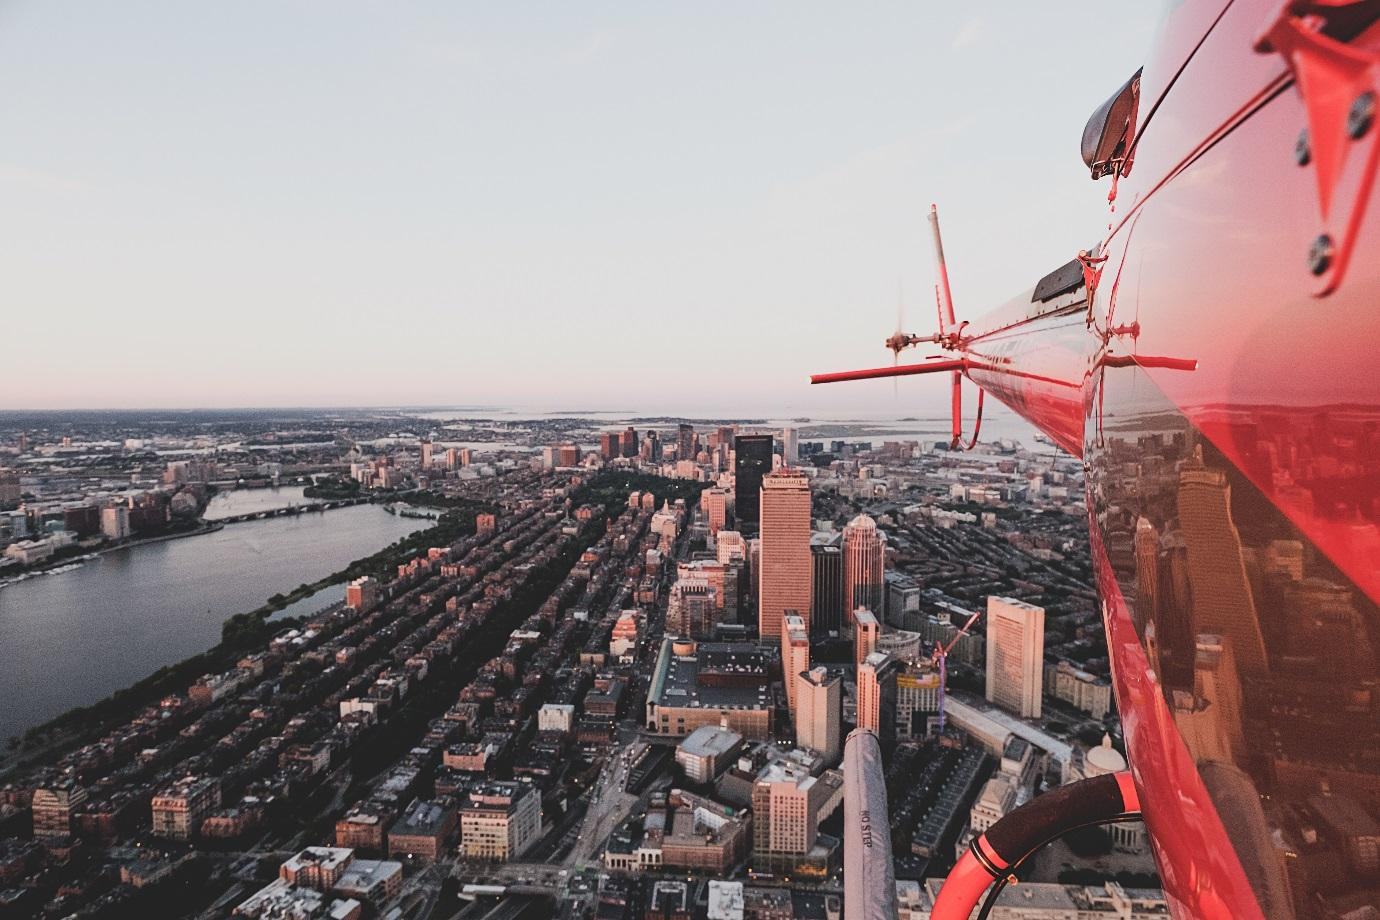 photography from a helicopter